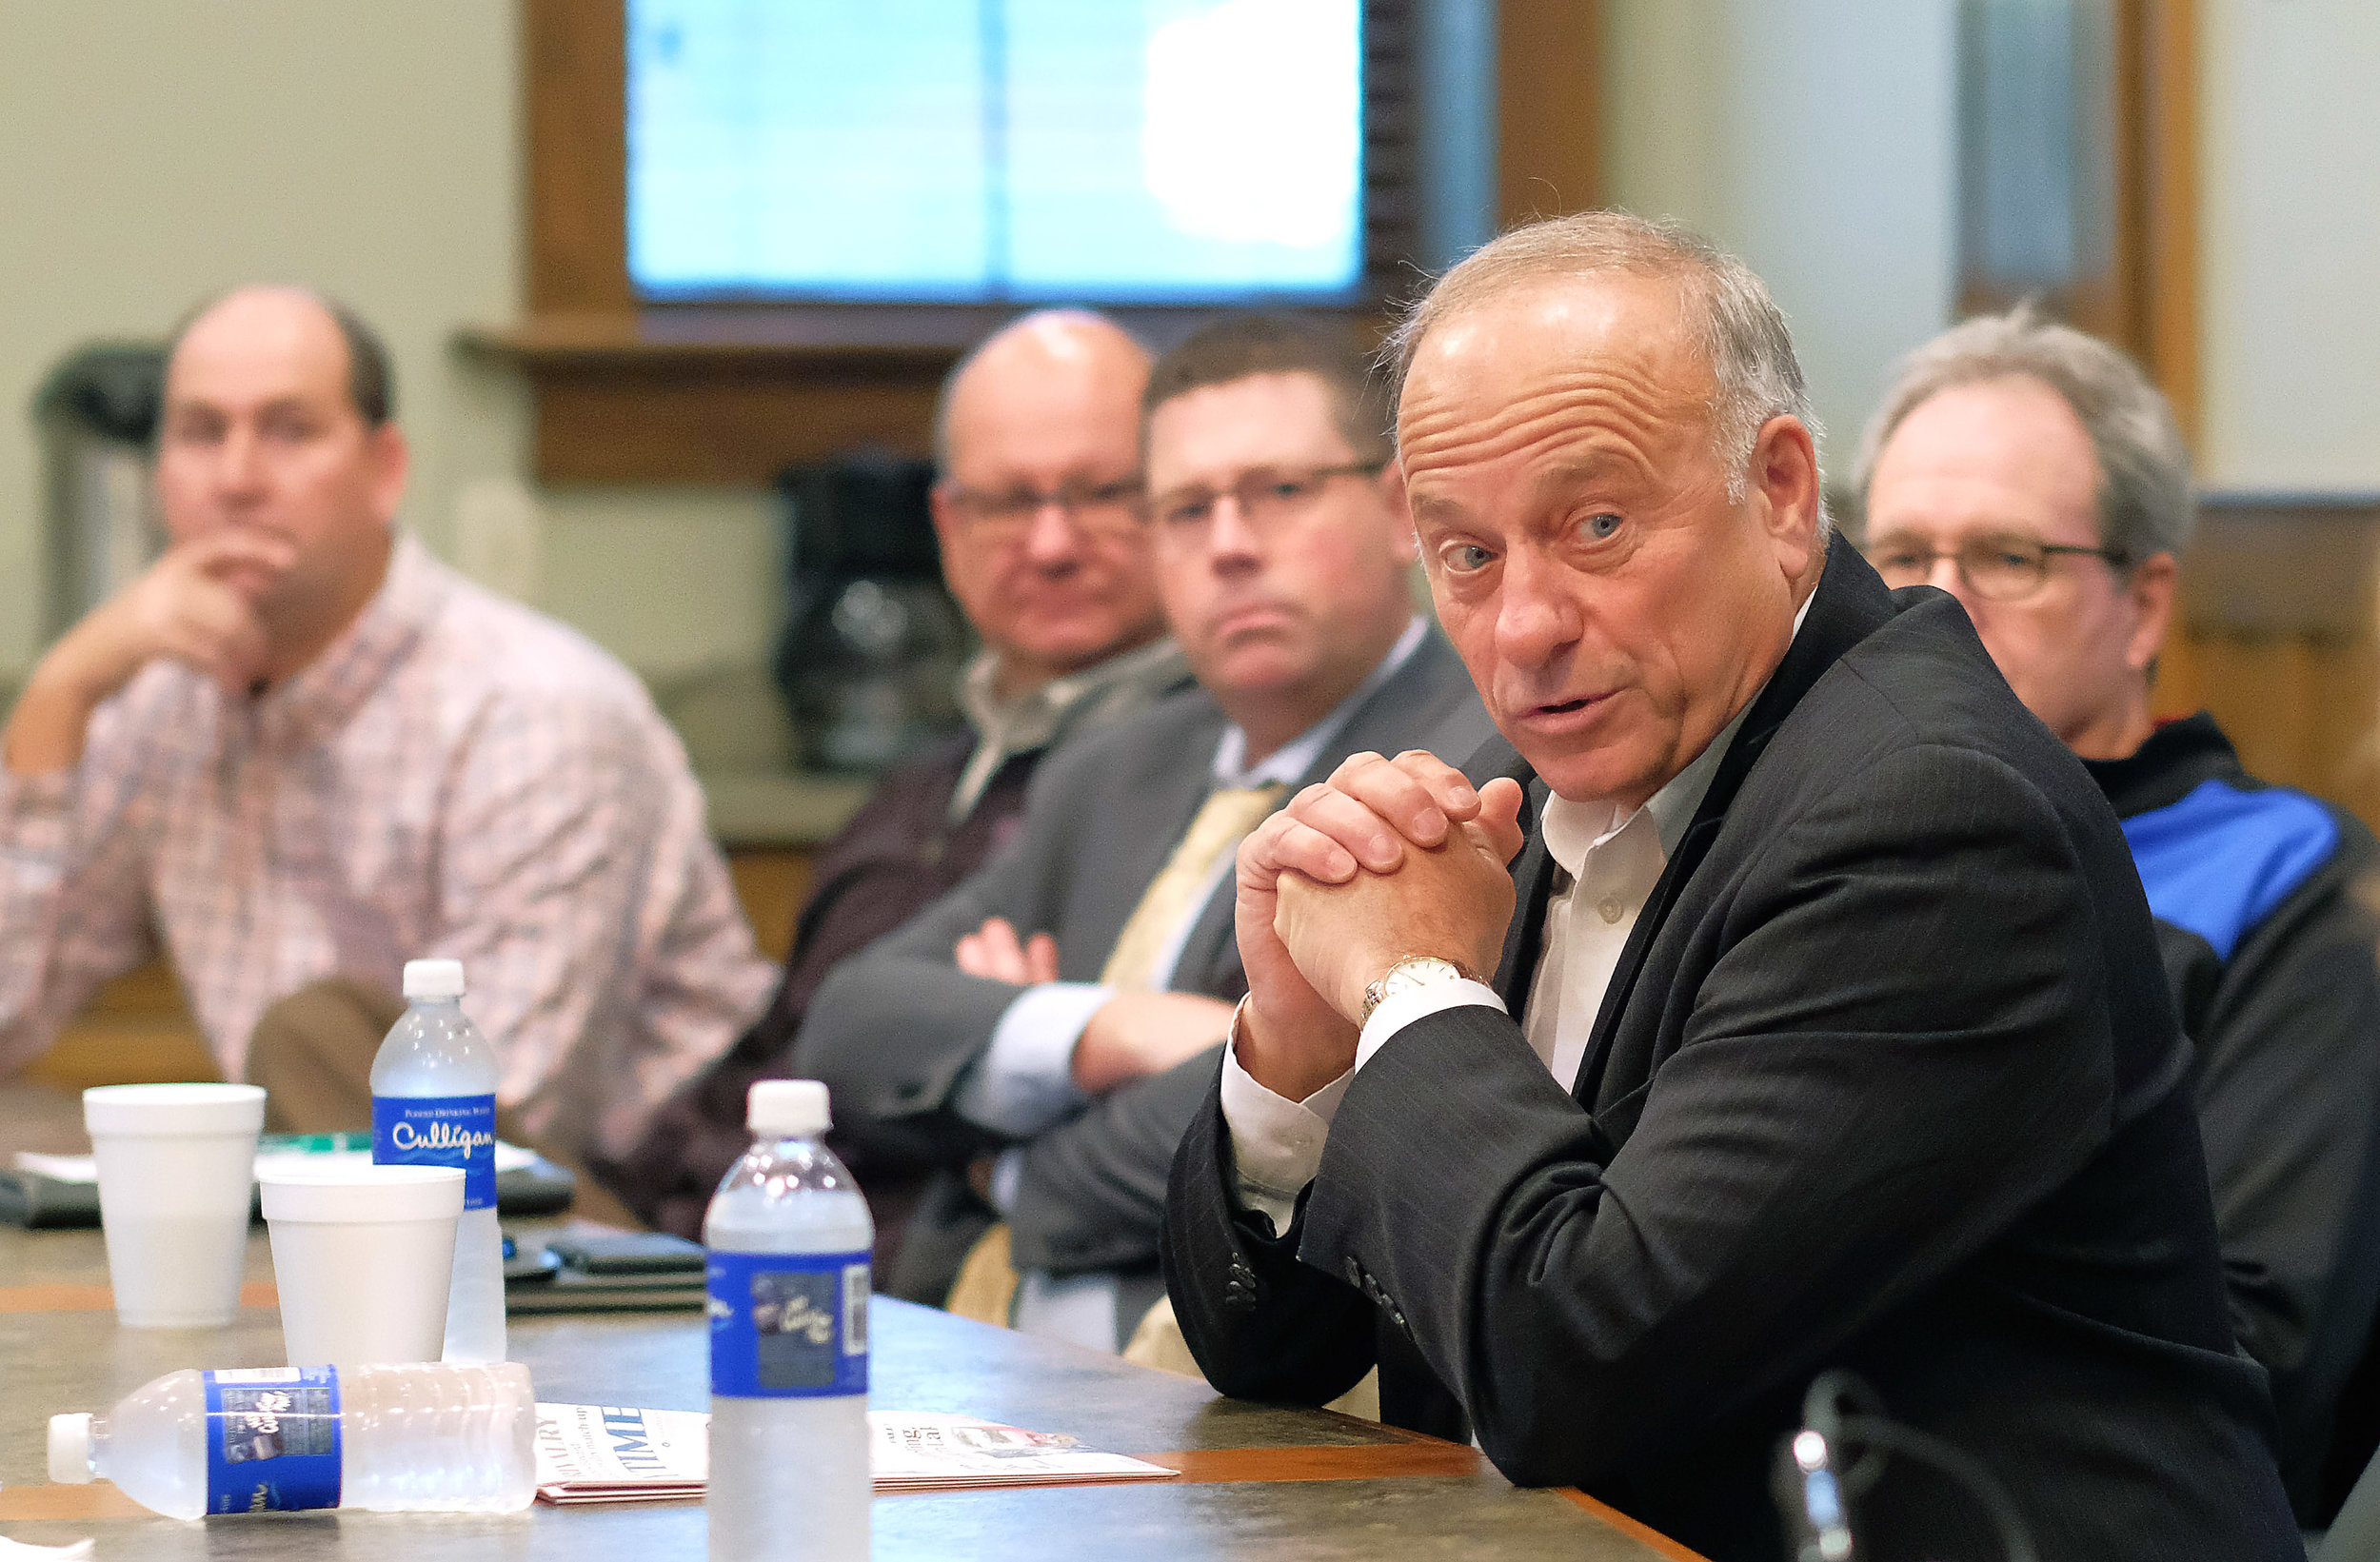 Congressman Steve King speaking to constituents in 2018.